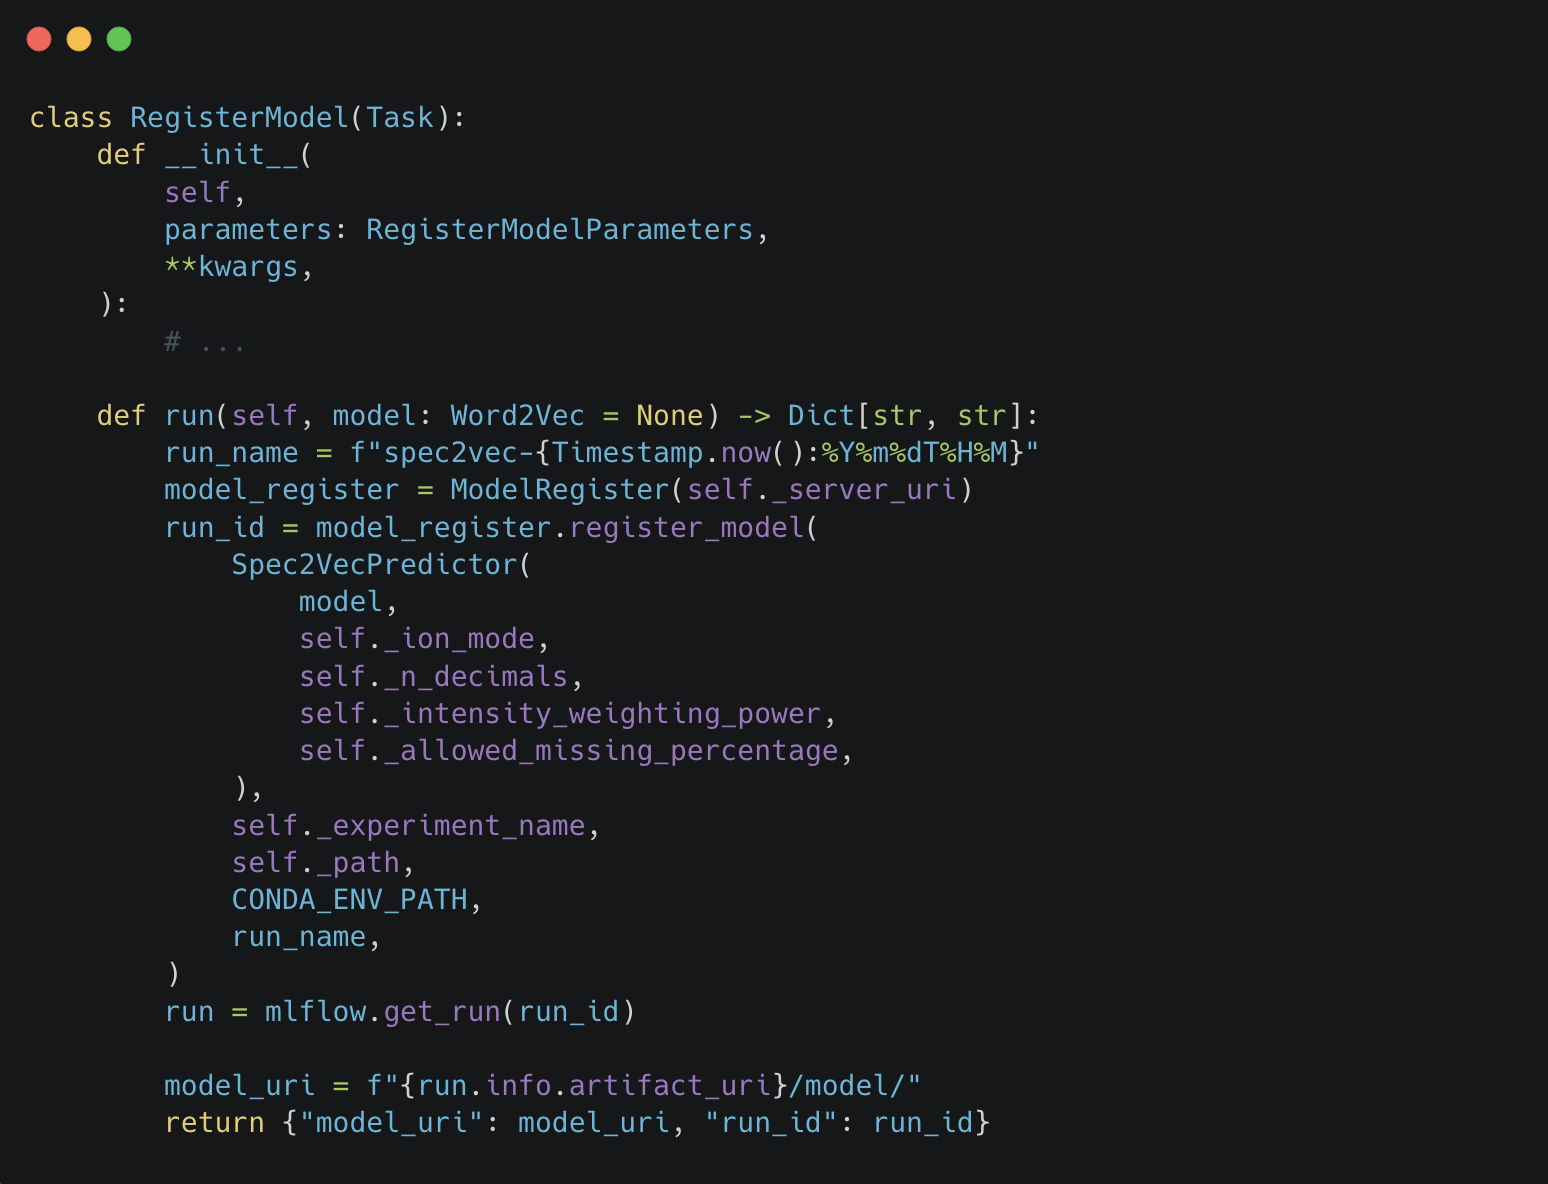 An example Python code snippet for the RegisterModel task showing an init function and a run function.